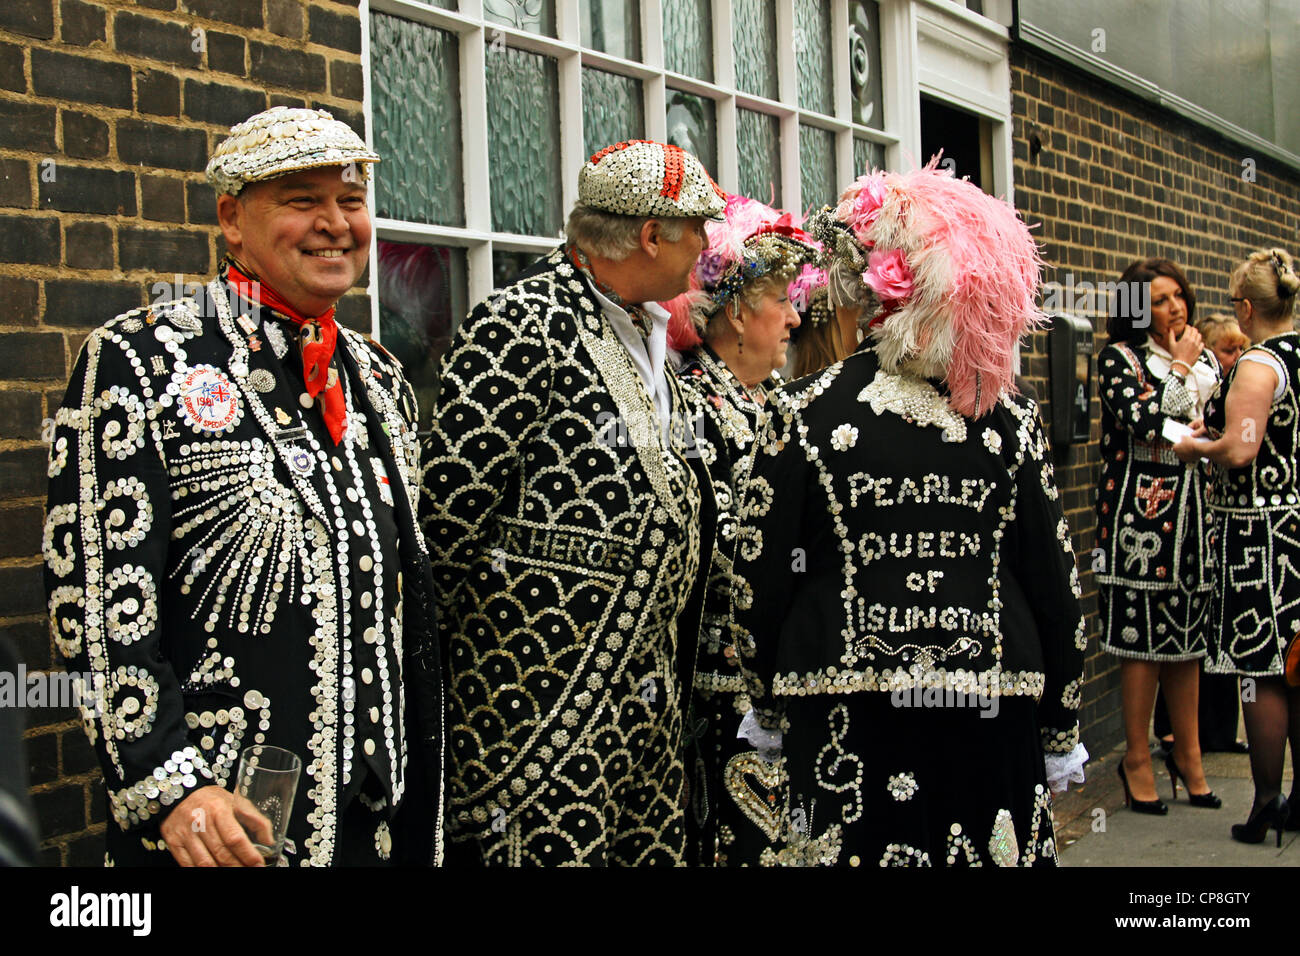 Pearly Kings and Queens at 'The Carpenters Arms' pub,London, celebrating the largest crowning of Pearly - Stock Image